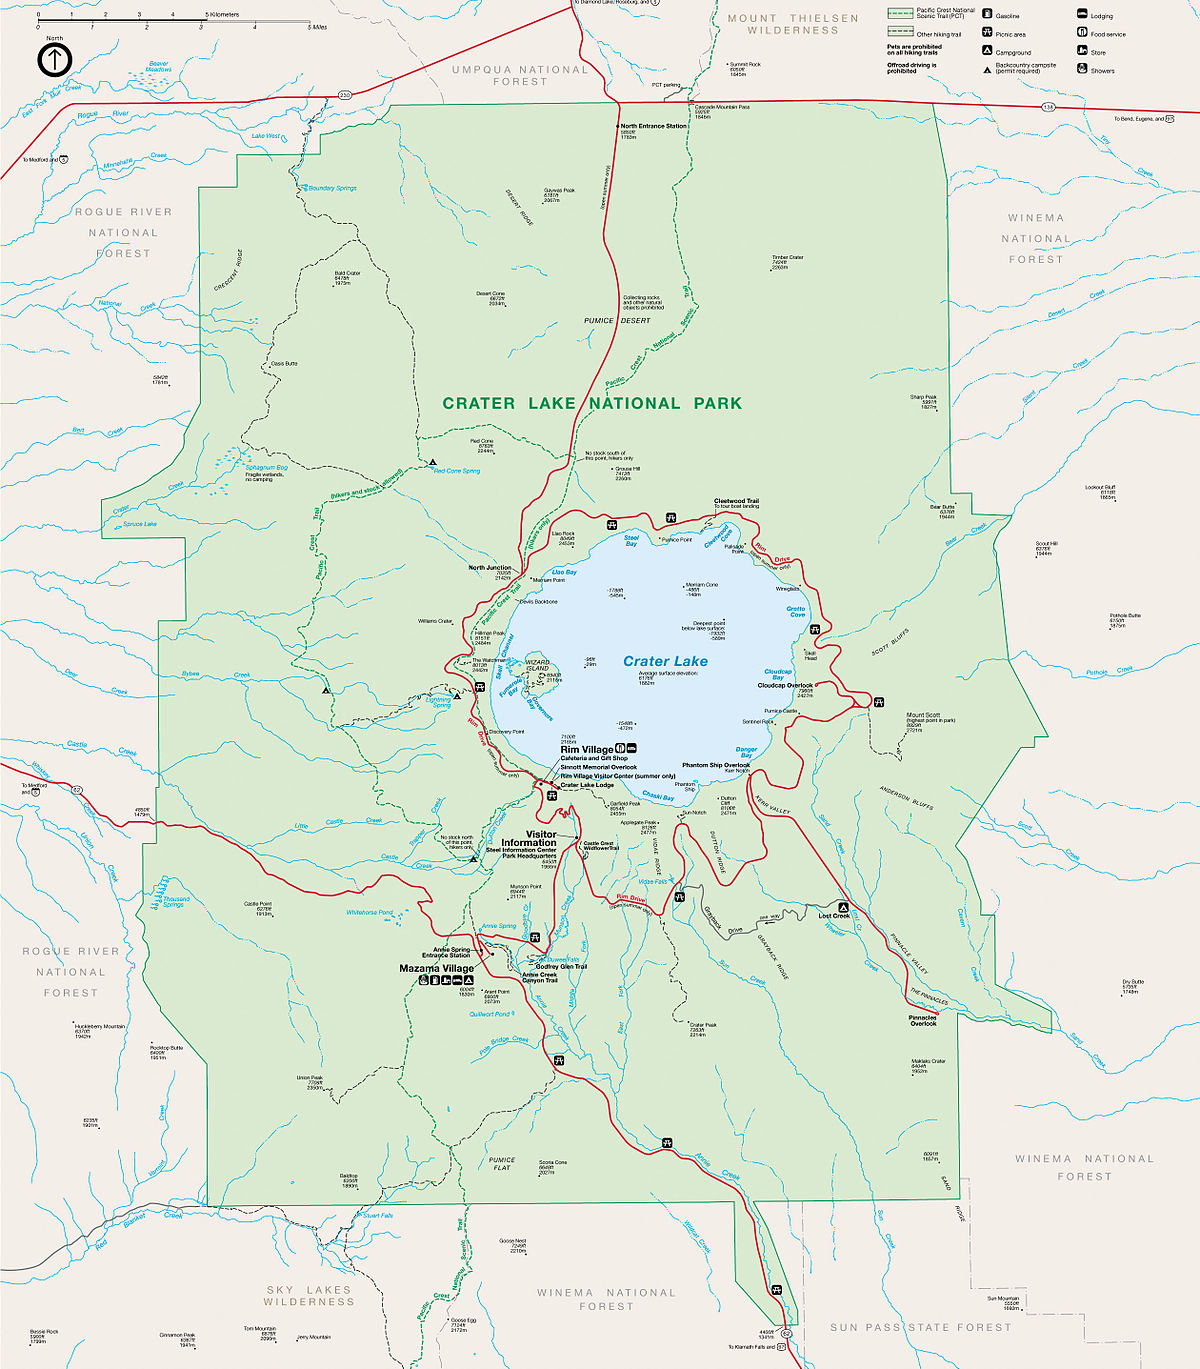 crater lake on a map File Crater Lake National Park Map Jpg Wikimedia Commons crater lake on a map